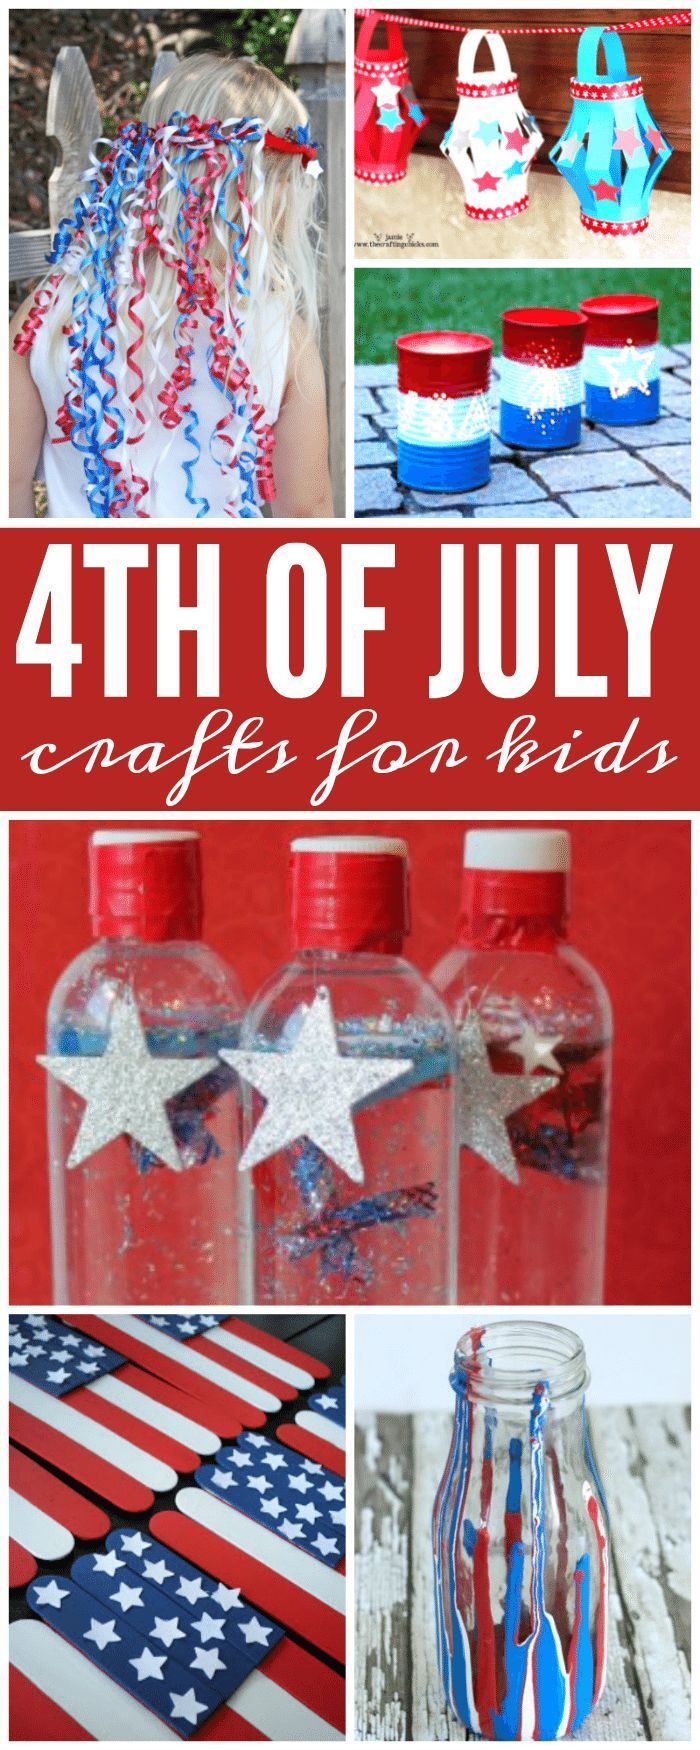 Here are some super fun 4th of July Crafts for Kids for